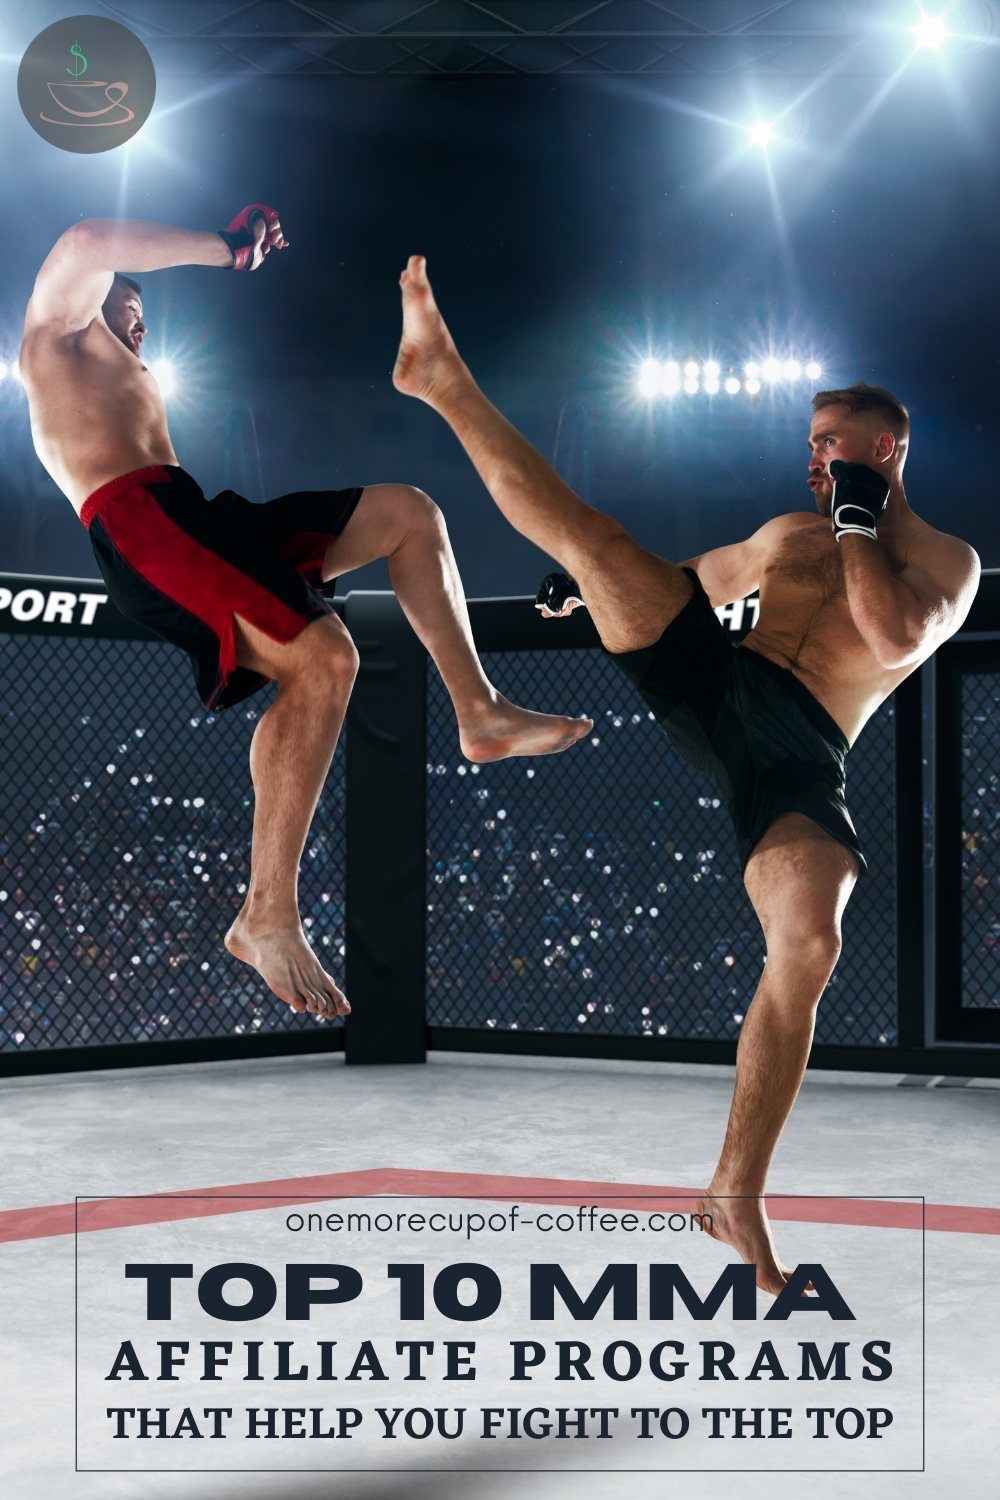 """two mma fighters in a battle for title inside the octagon, with text overlay """"Top 10 MMA Affiliate Programs That Help You Fight To The Top"""""""